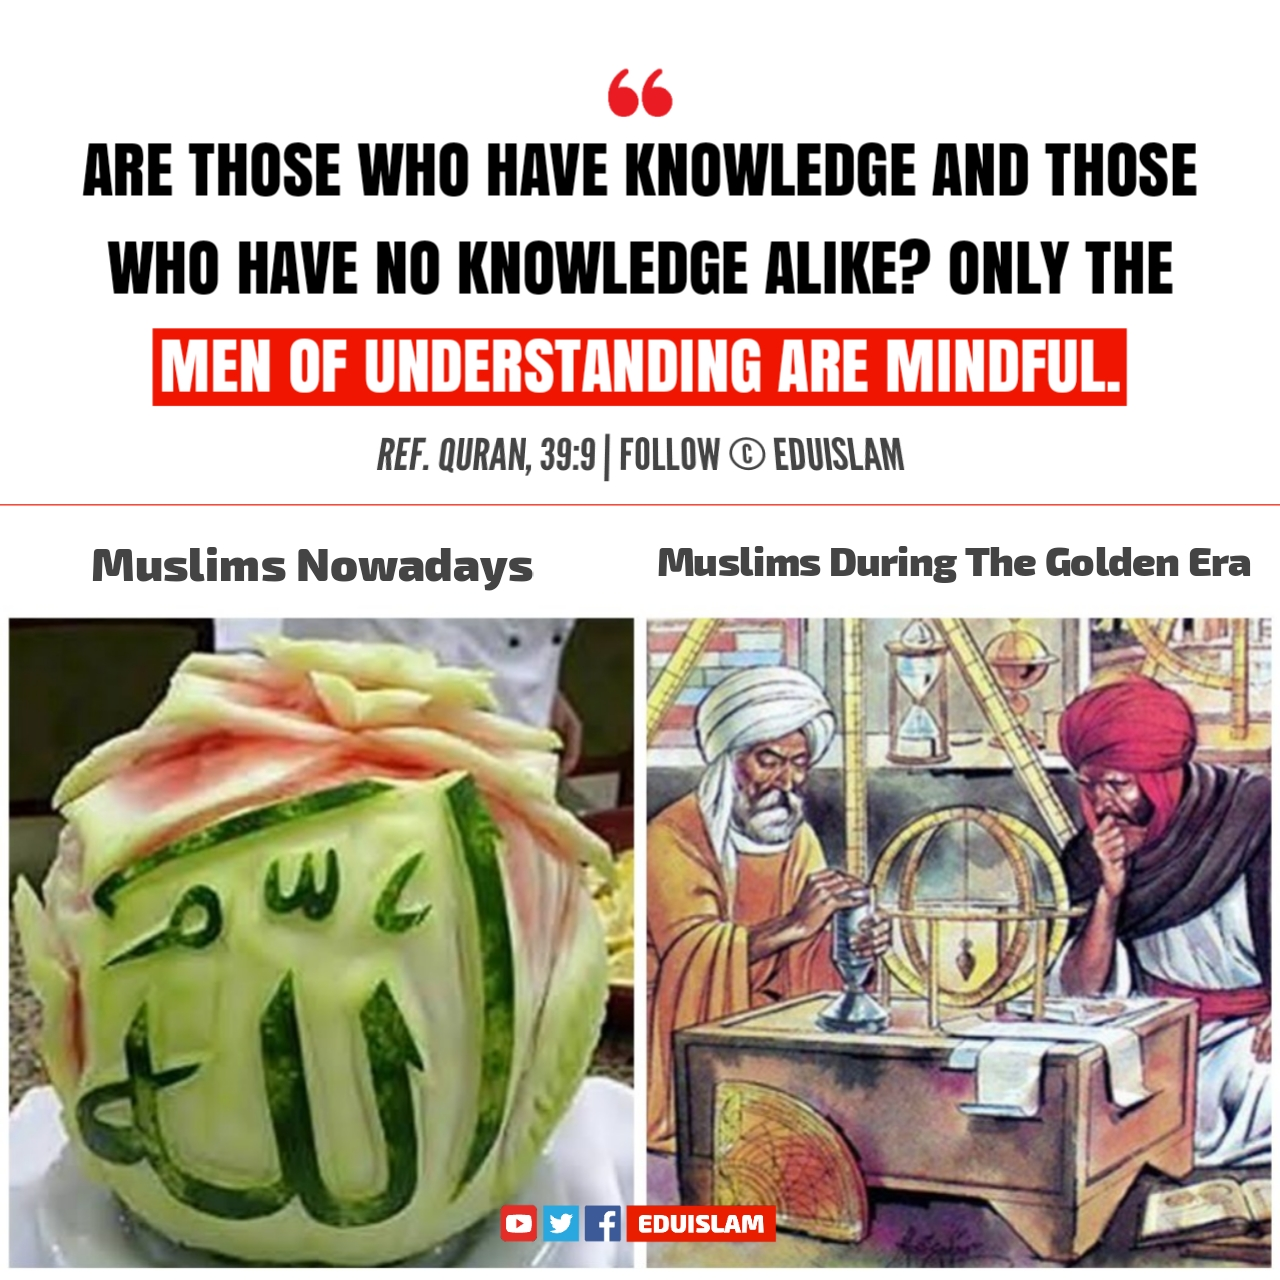 islamic golden age facts, Islam about scientific research, quran about experiments, education, learning in Islam, facts about Muslim golden age, facts of today Muslims